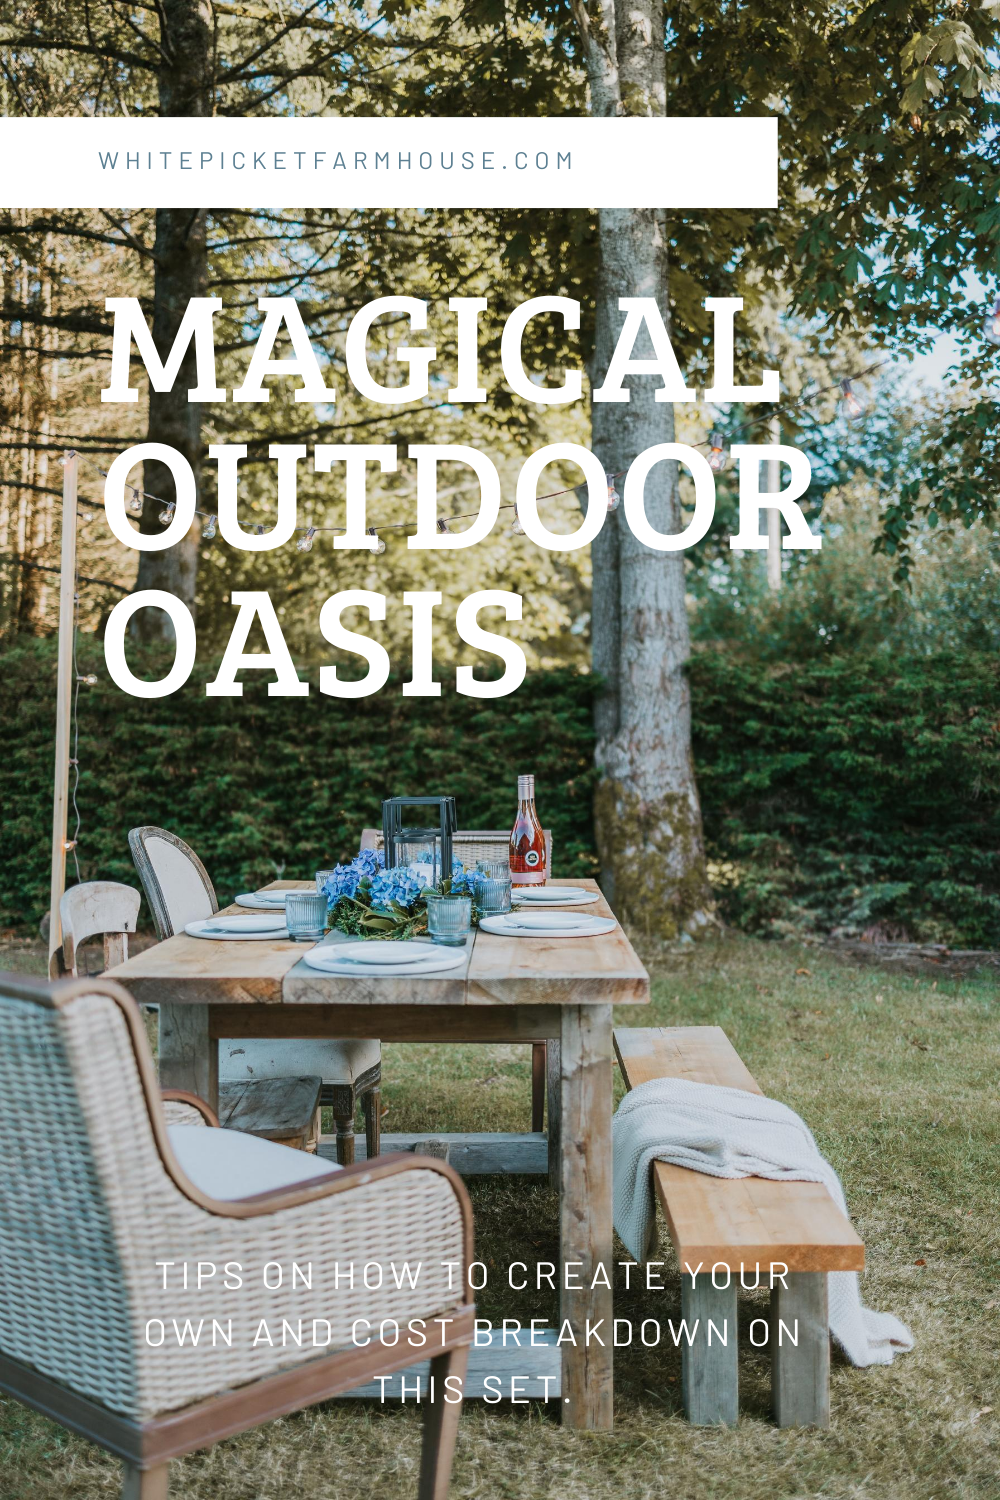 How To Create A Magical Outdoor Oasis For Under 100 Dollars. My Tips on How To Source Furniture and Decor To Make Your Very Own Outdoor Oasis!